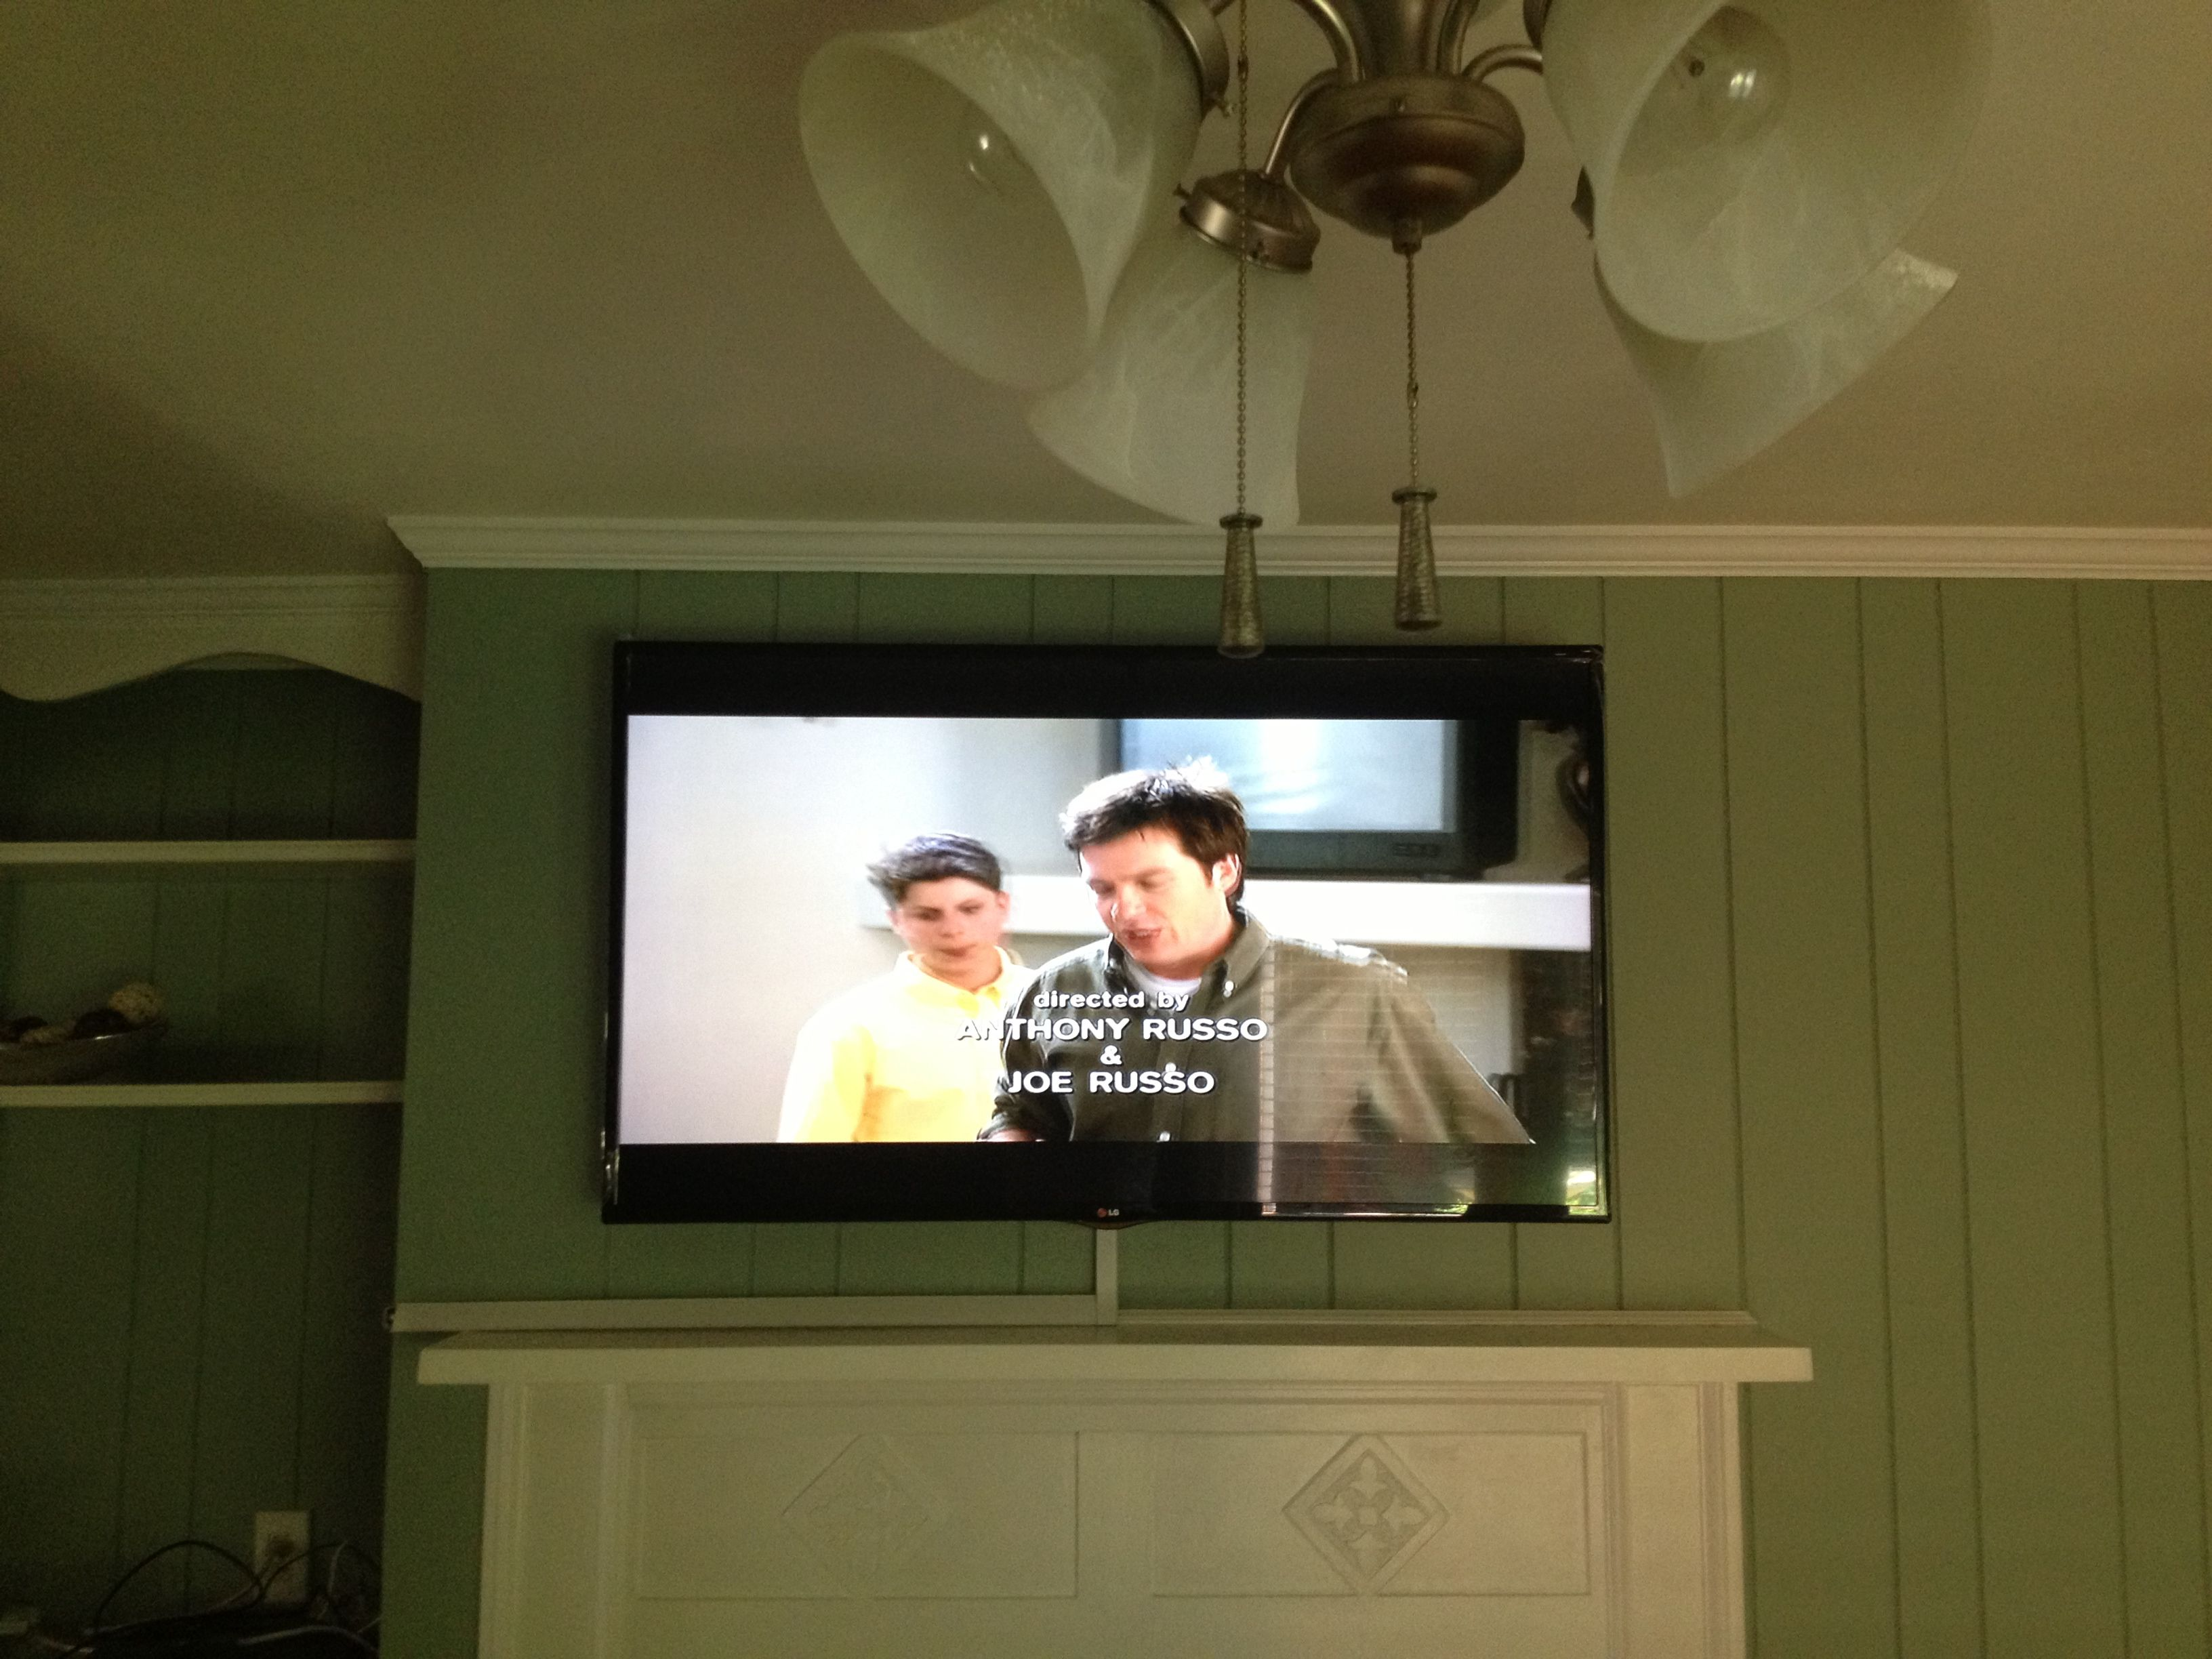 Charlotte Home Theater Installation Projector Surround Wiring Tv Speaker Mounting Flatscreen